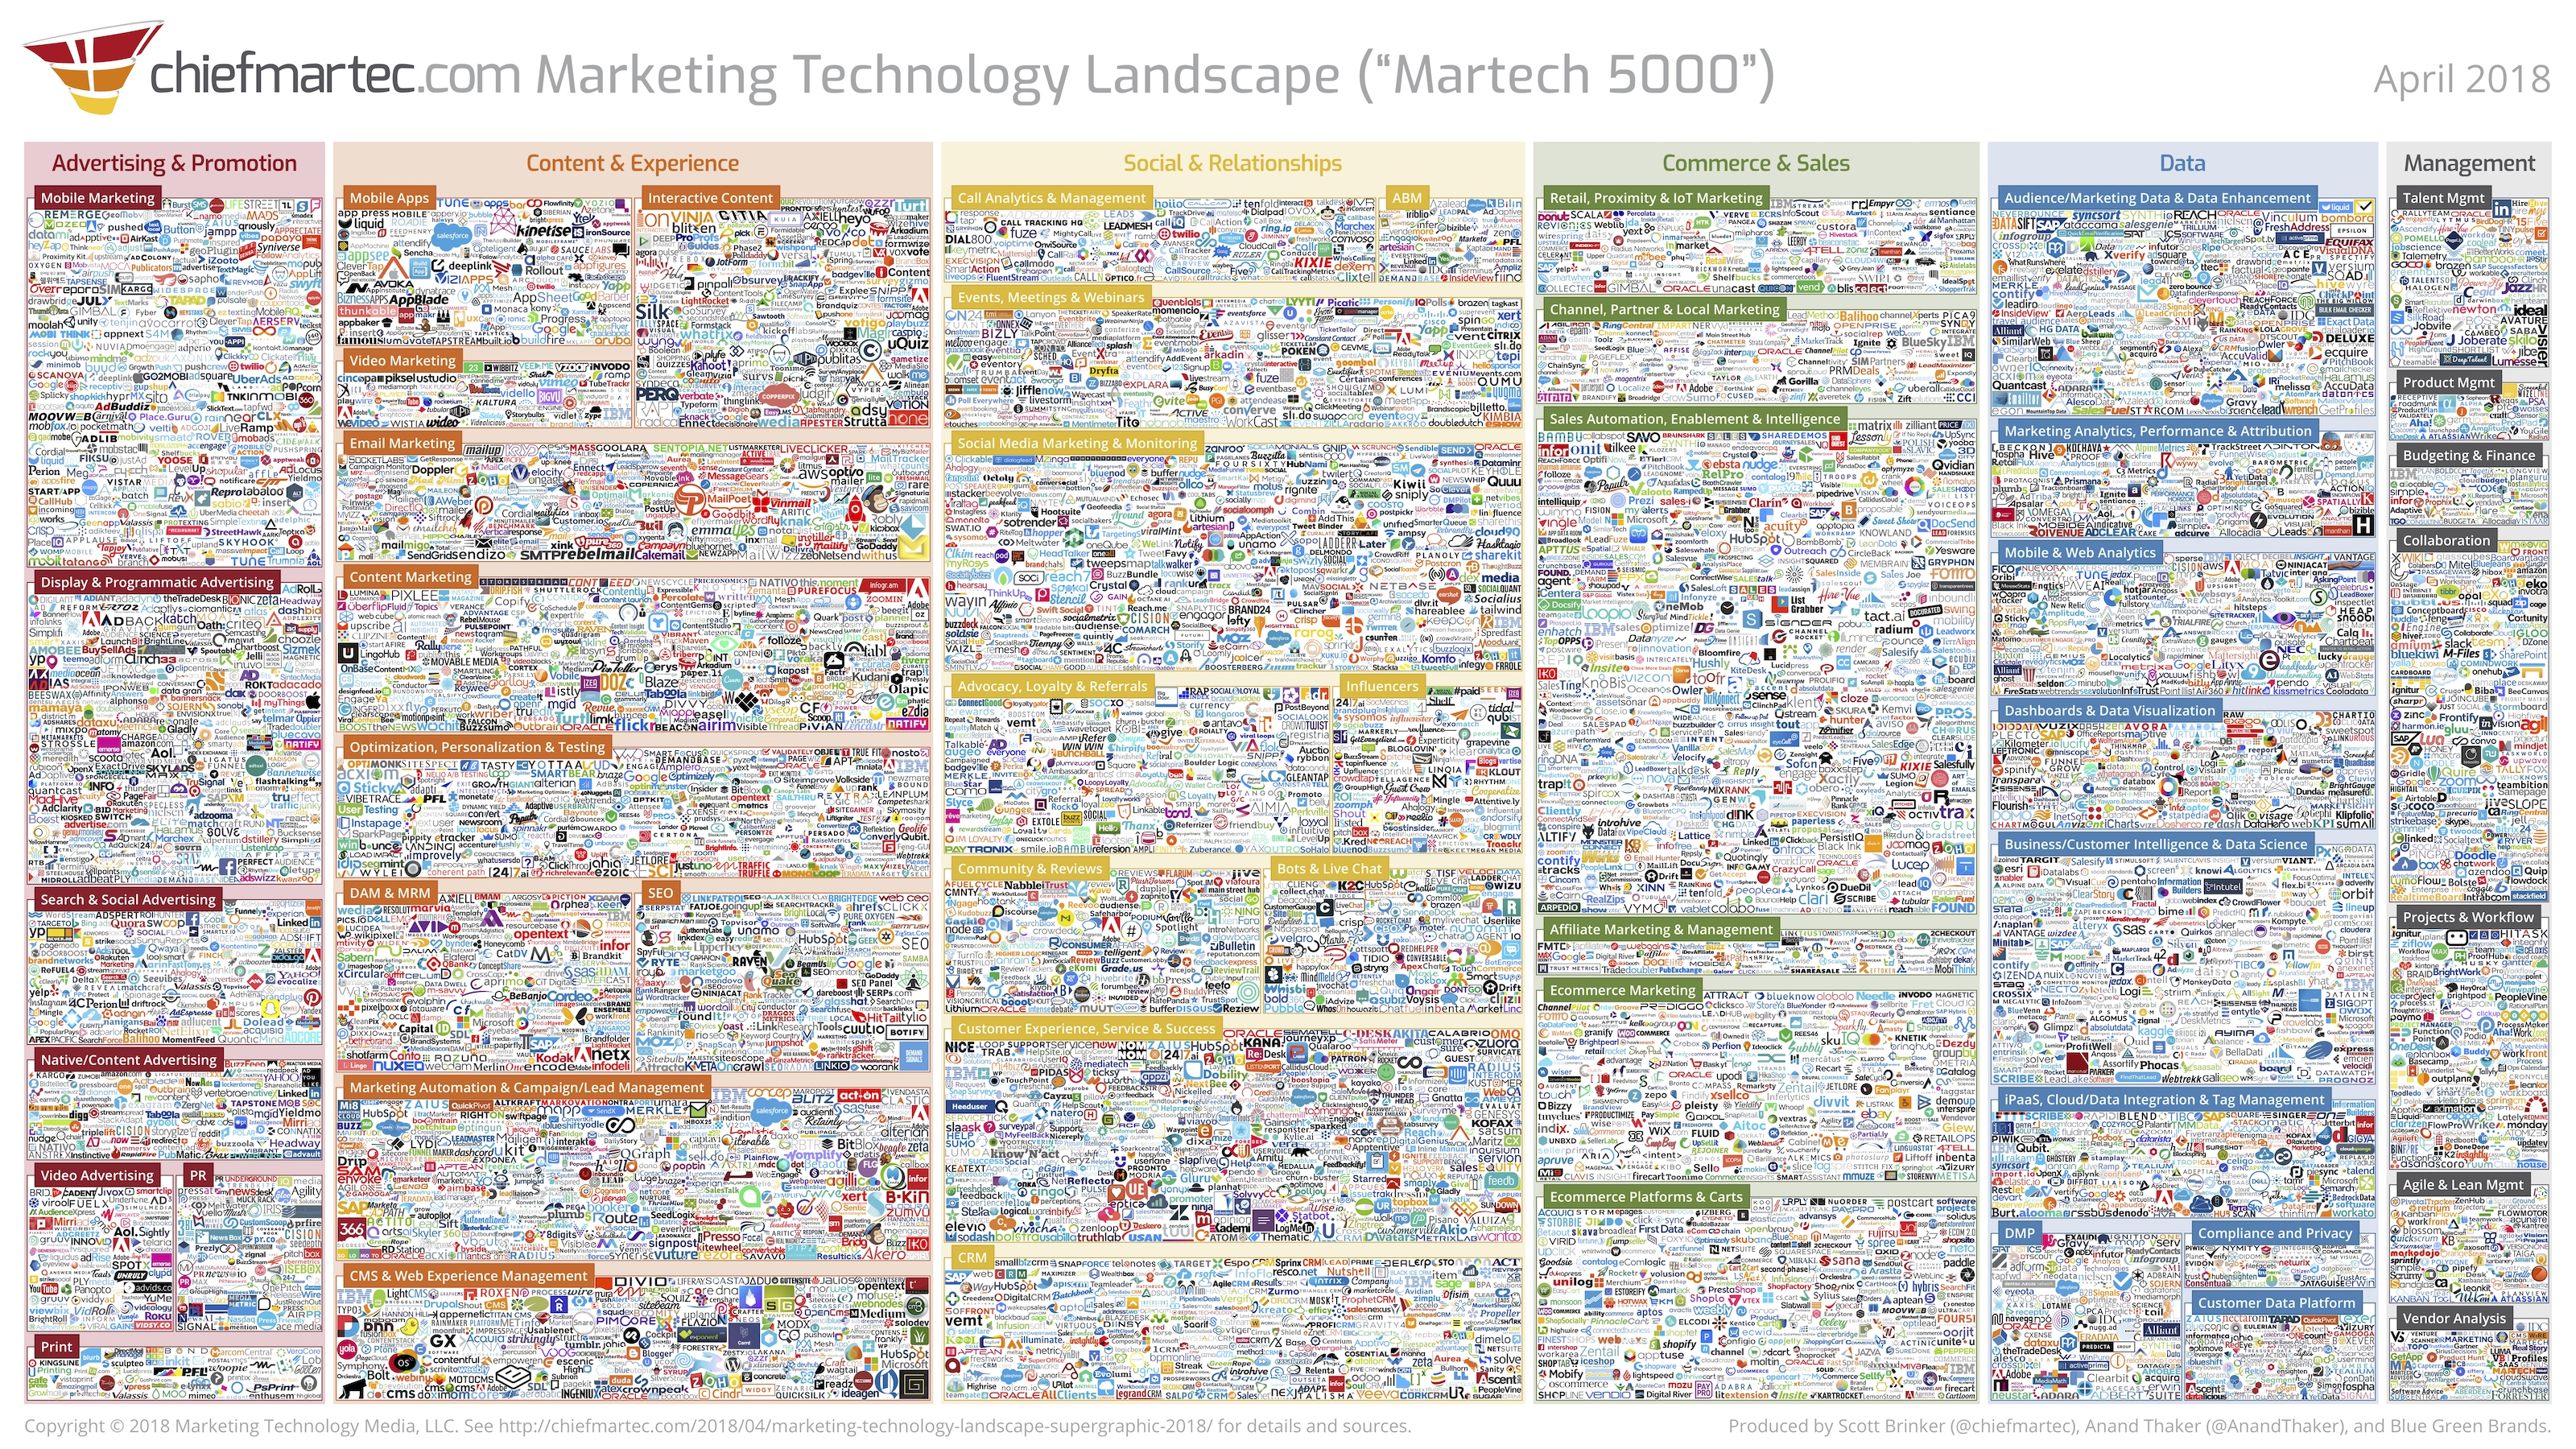 Global Player Liste Marketing Technology Landscape Supergraphic 2018 Martech 5000